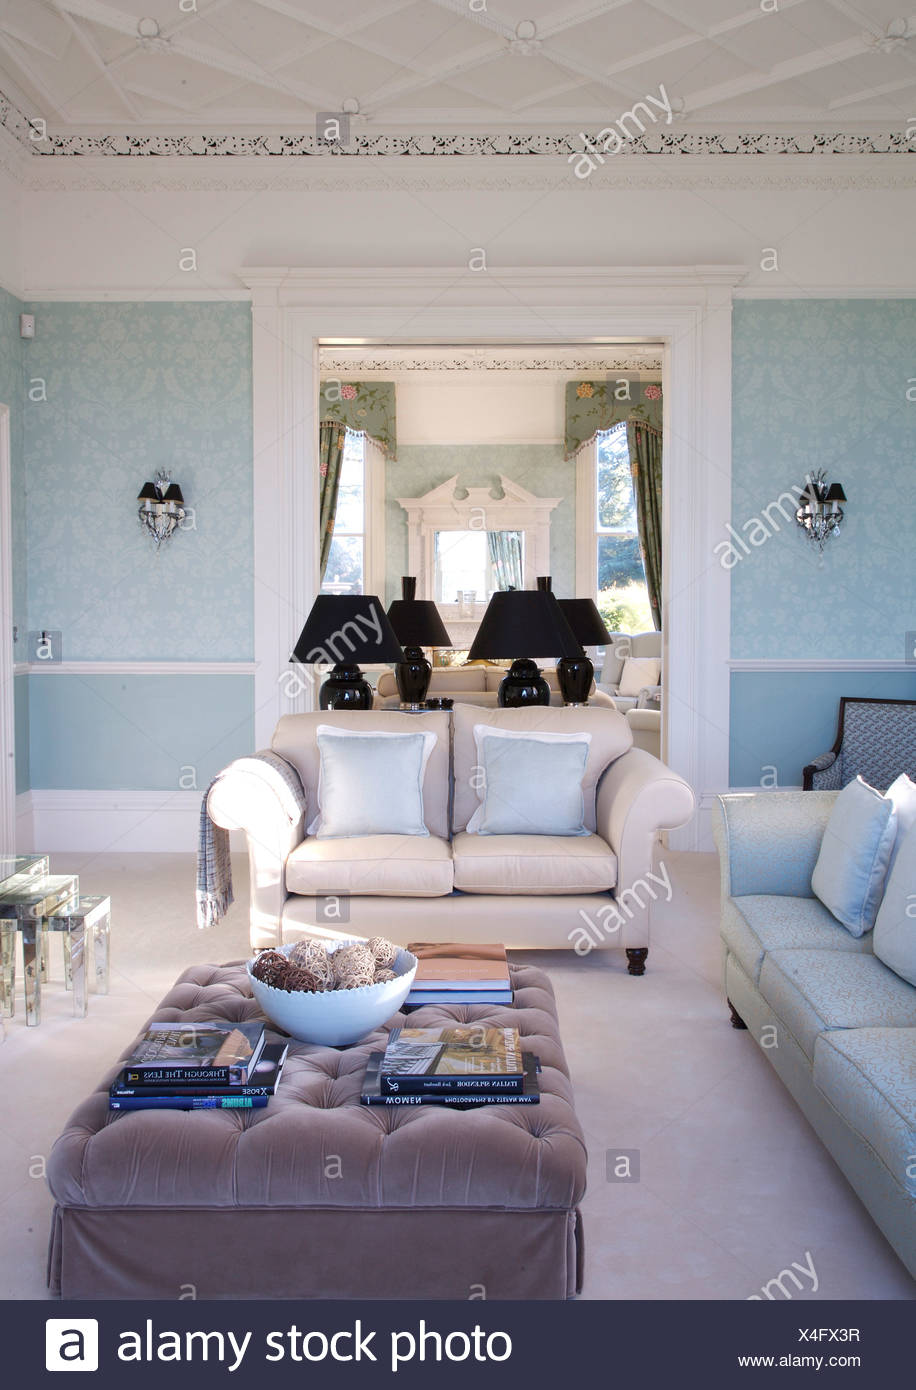 Gray Velvet Ottoman And White Sofas And Carpet In Pale Blue